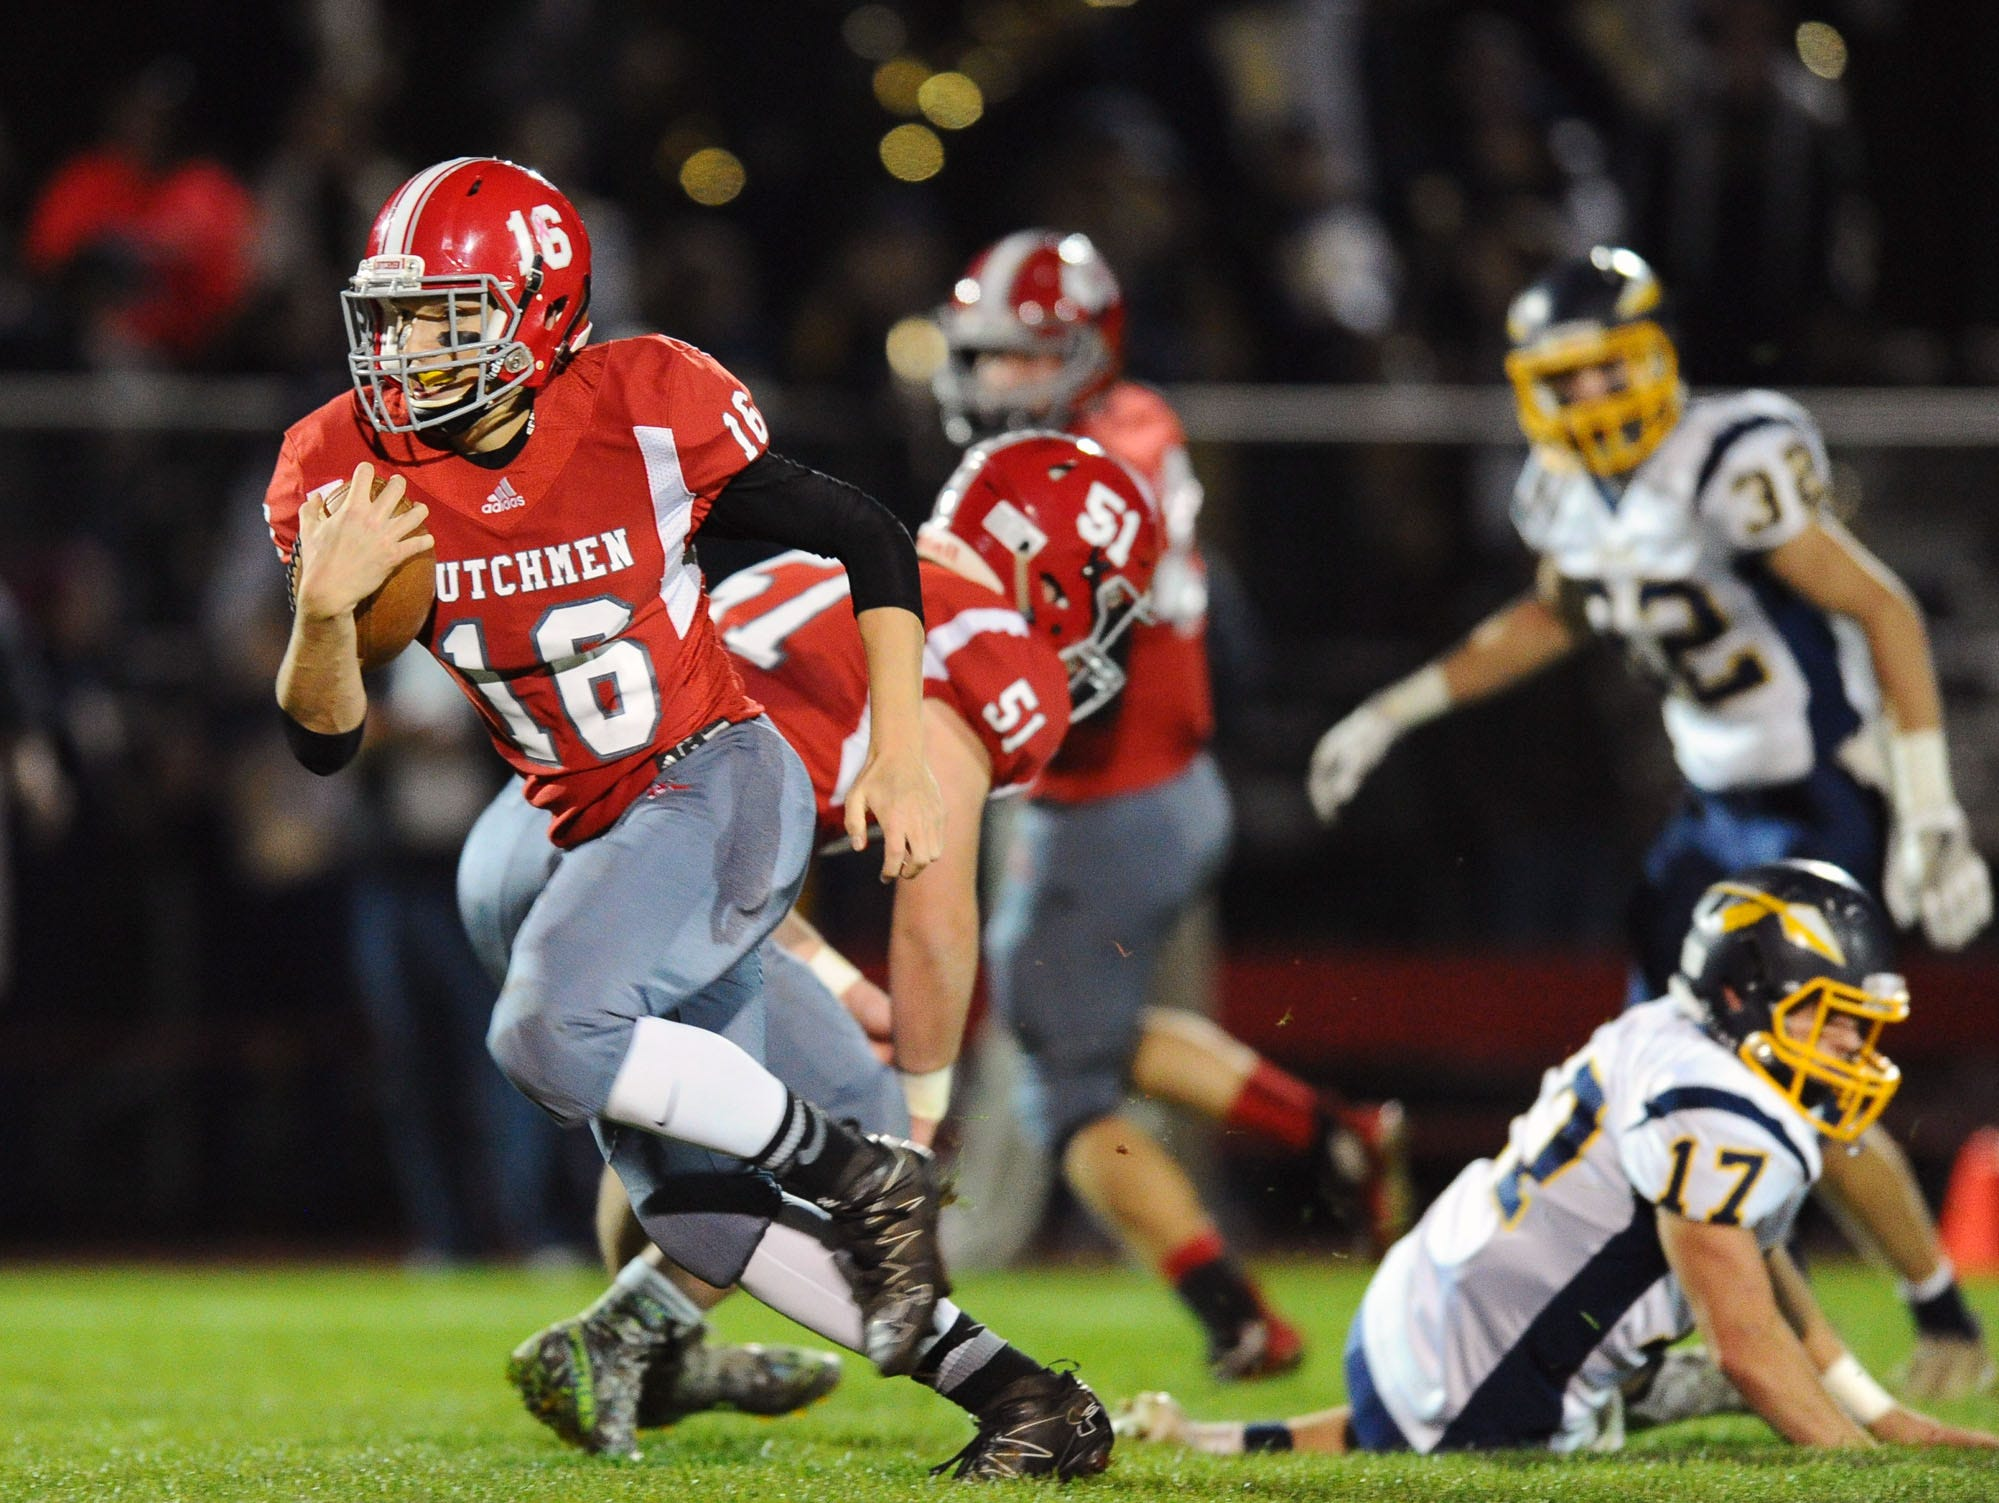 Annville-Cleona's Junior Bours takes off for one of his two touchdown runs that helped the Dutchmen to a must-win 31-13 victory over previously red-hot Elco on Friday night.